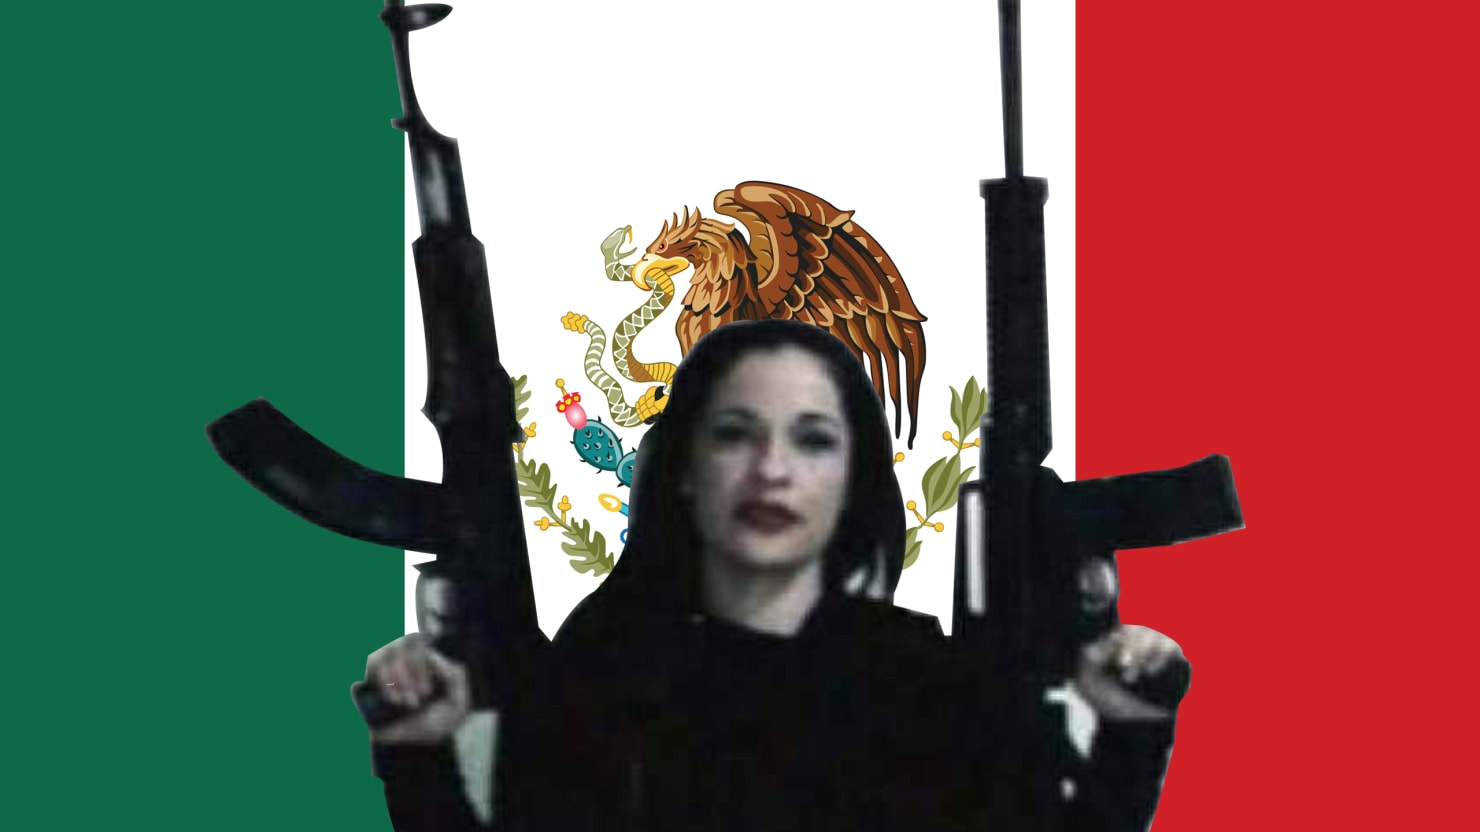 She Was the Cartel's Top Assassin. And Then Her Boyfriend Turned Her In.